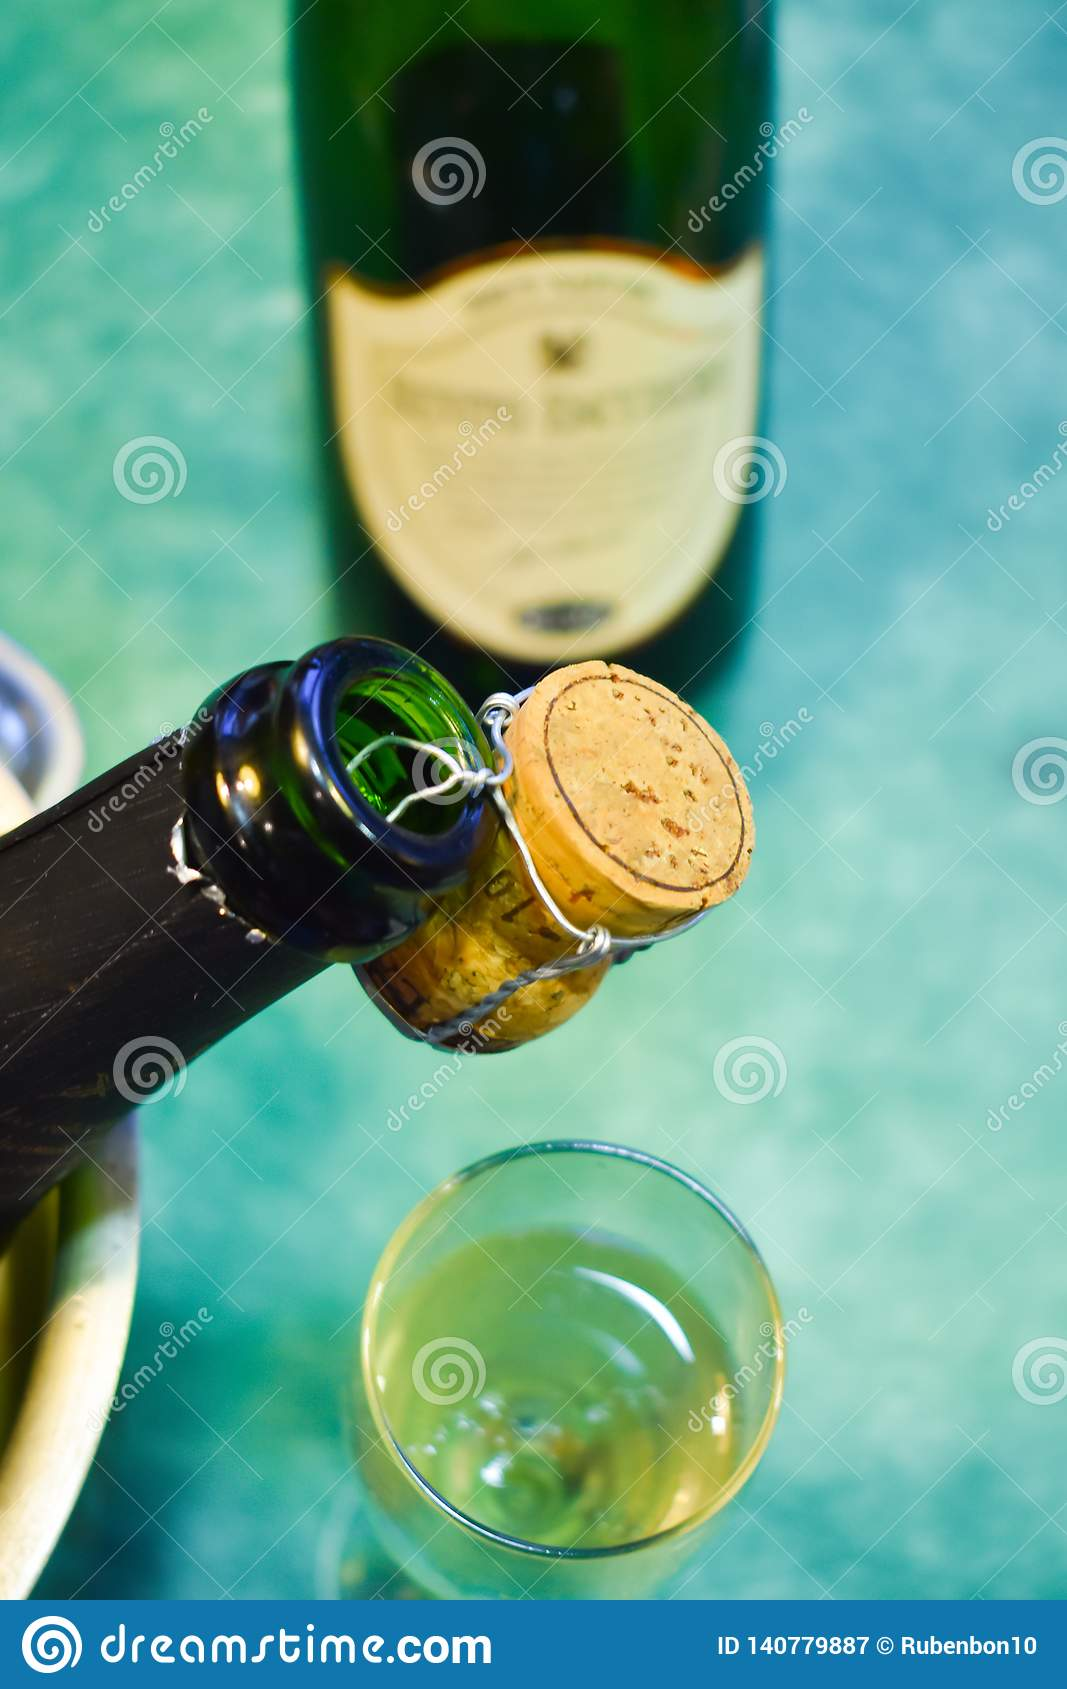 a champagne bottle in a cold bucket with ice and water, the cork holding from the mouth decorating the scene, a cup with sparking